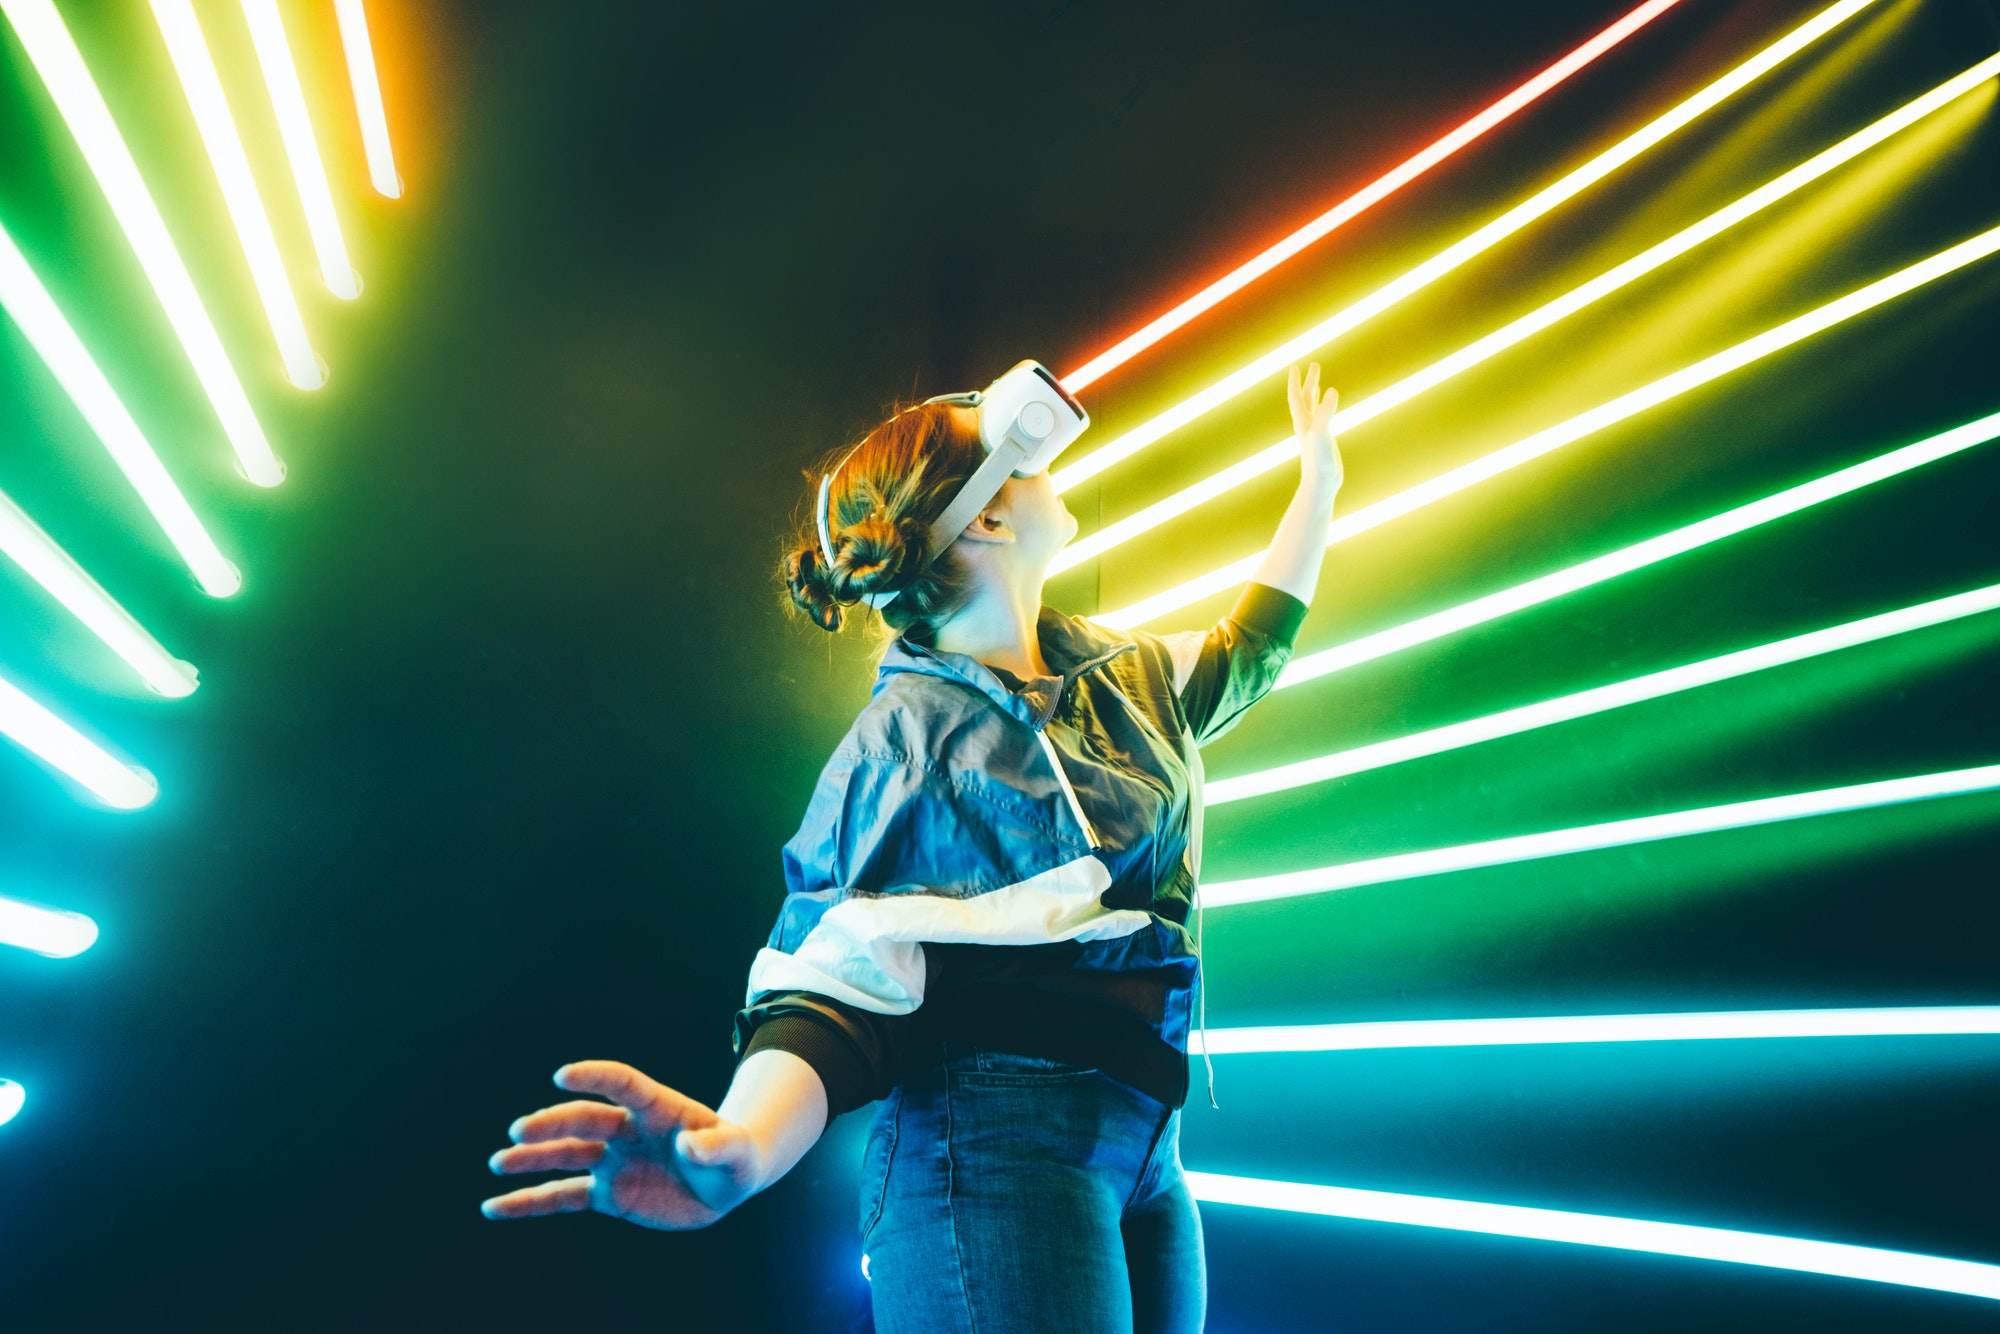 Girl using VR goggles in colorful neon lights